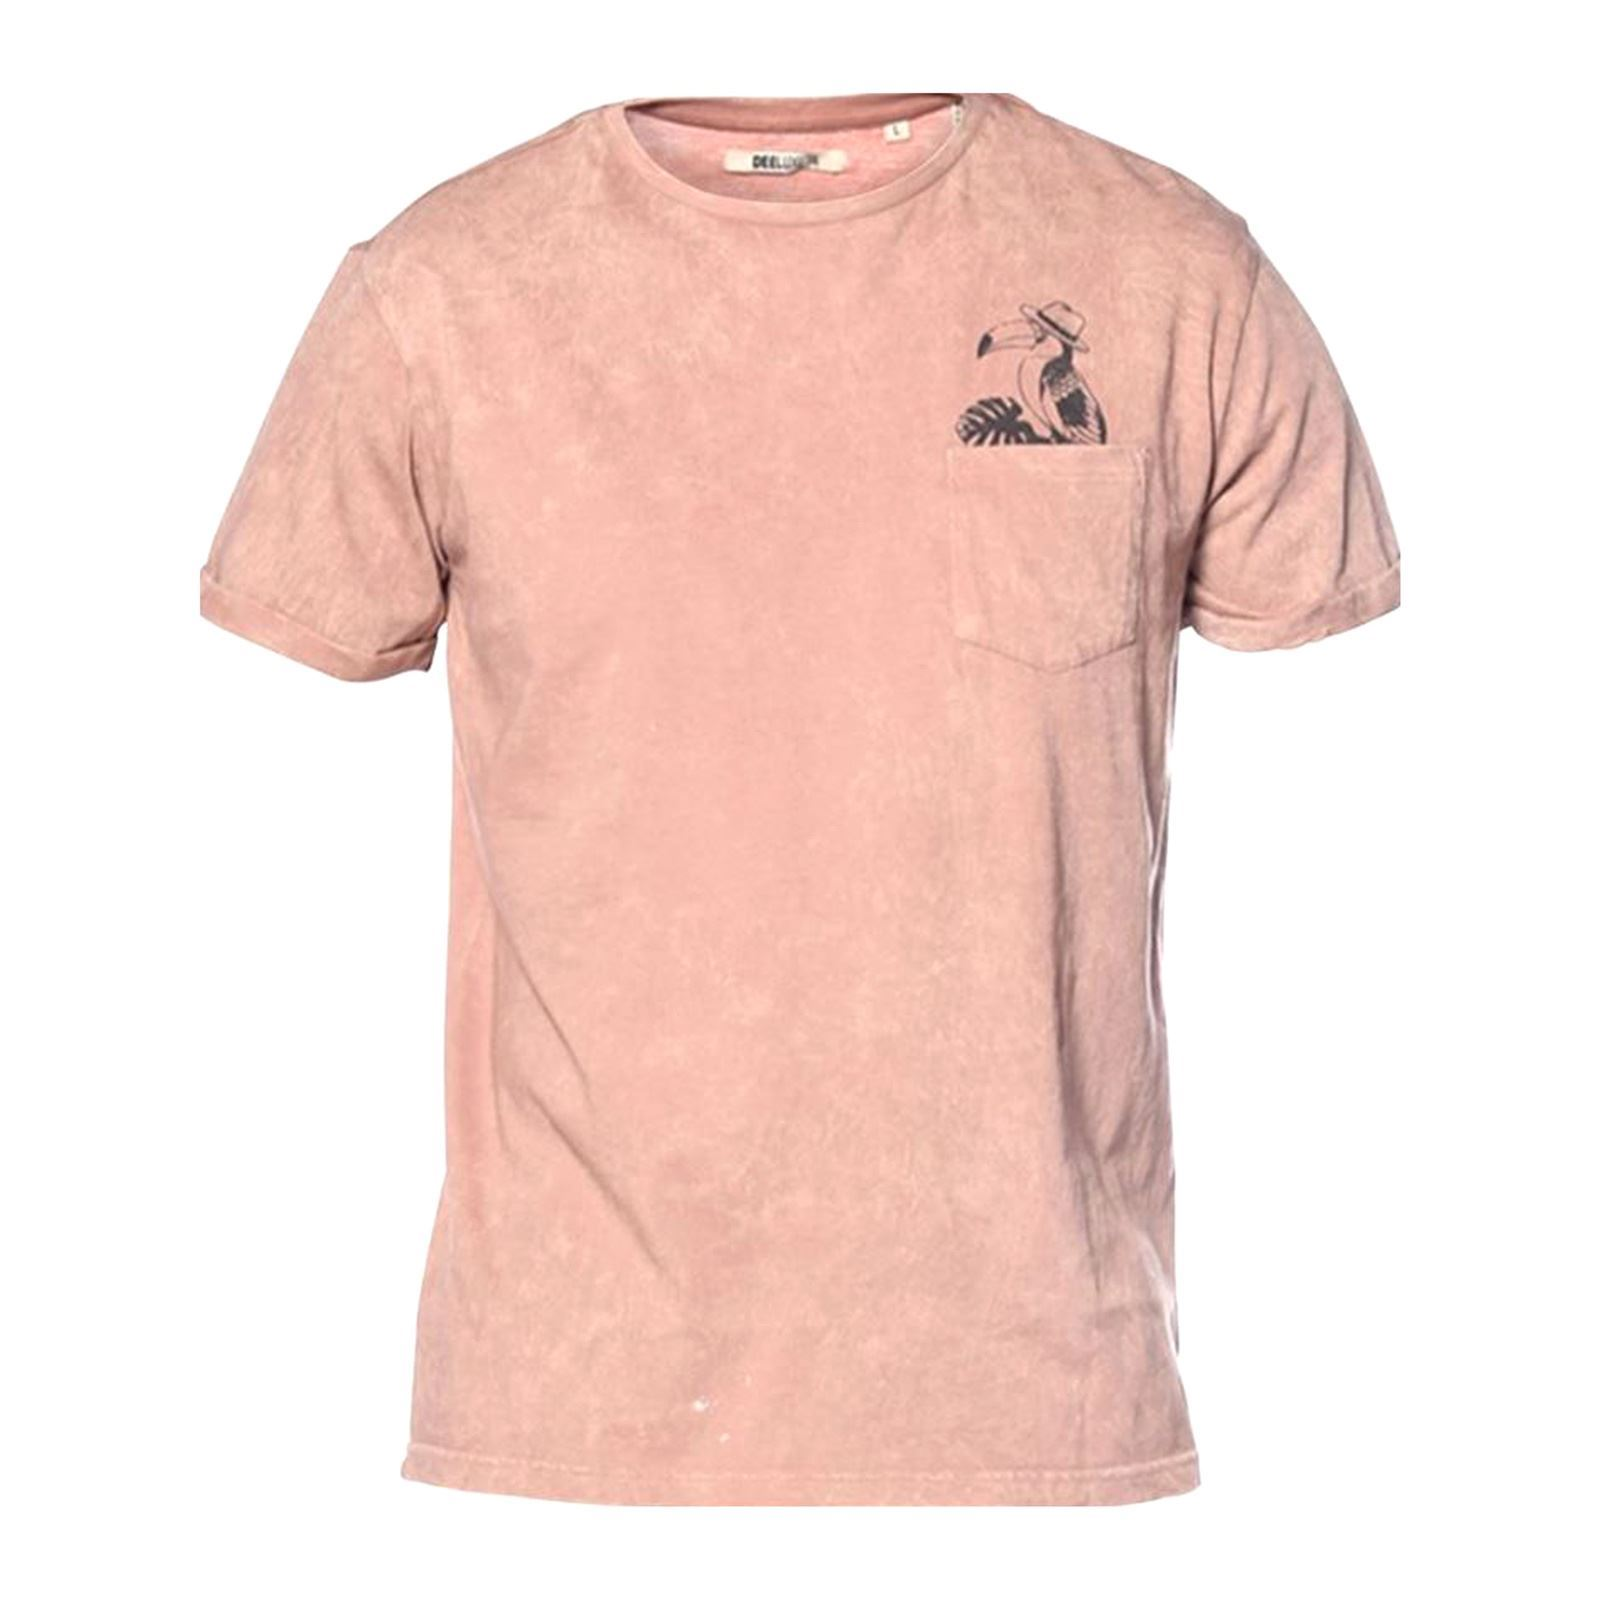 Rose Manches Brandalley T Shirt Waiki Deeluxe Courtes Xqp70Bp 51be70a5651